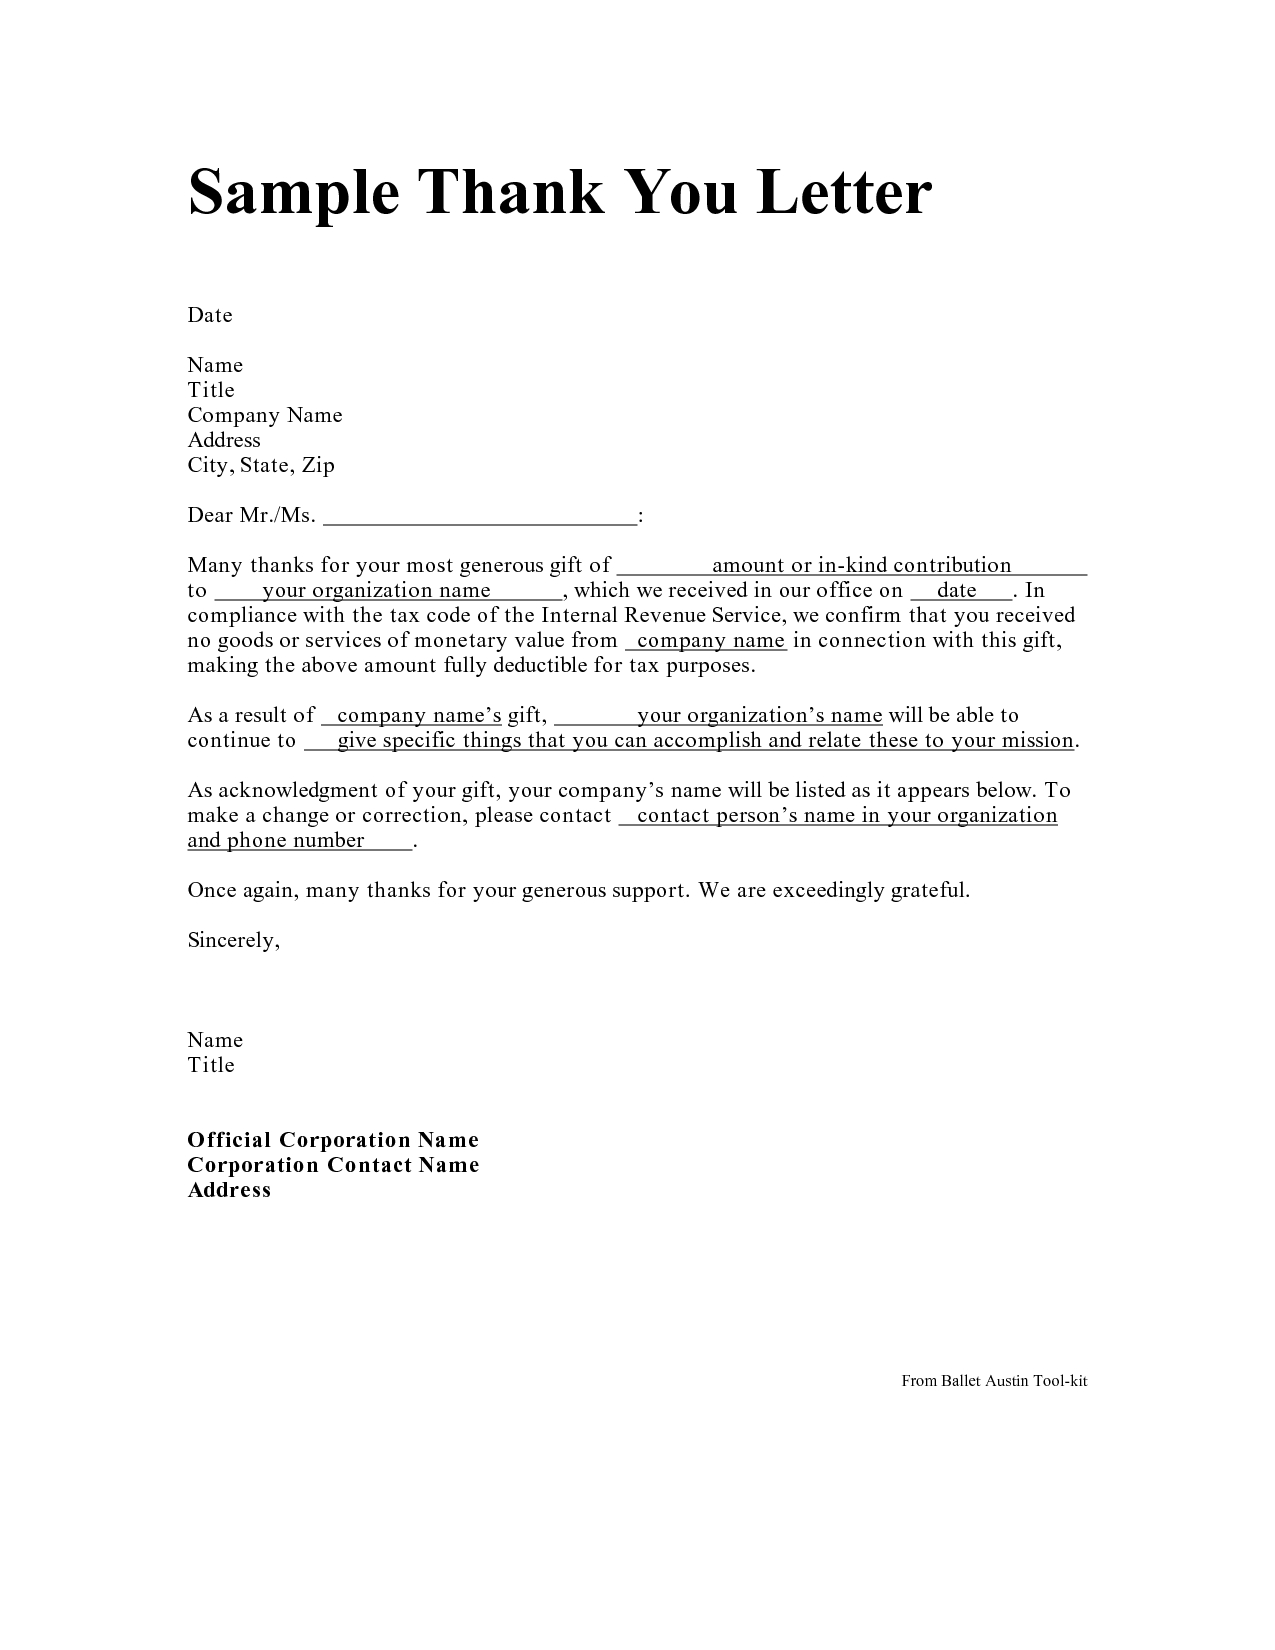 Naval Letter format Template - Letter Of Appreciation format Acurnamedia